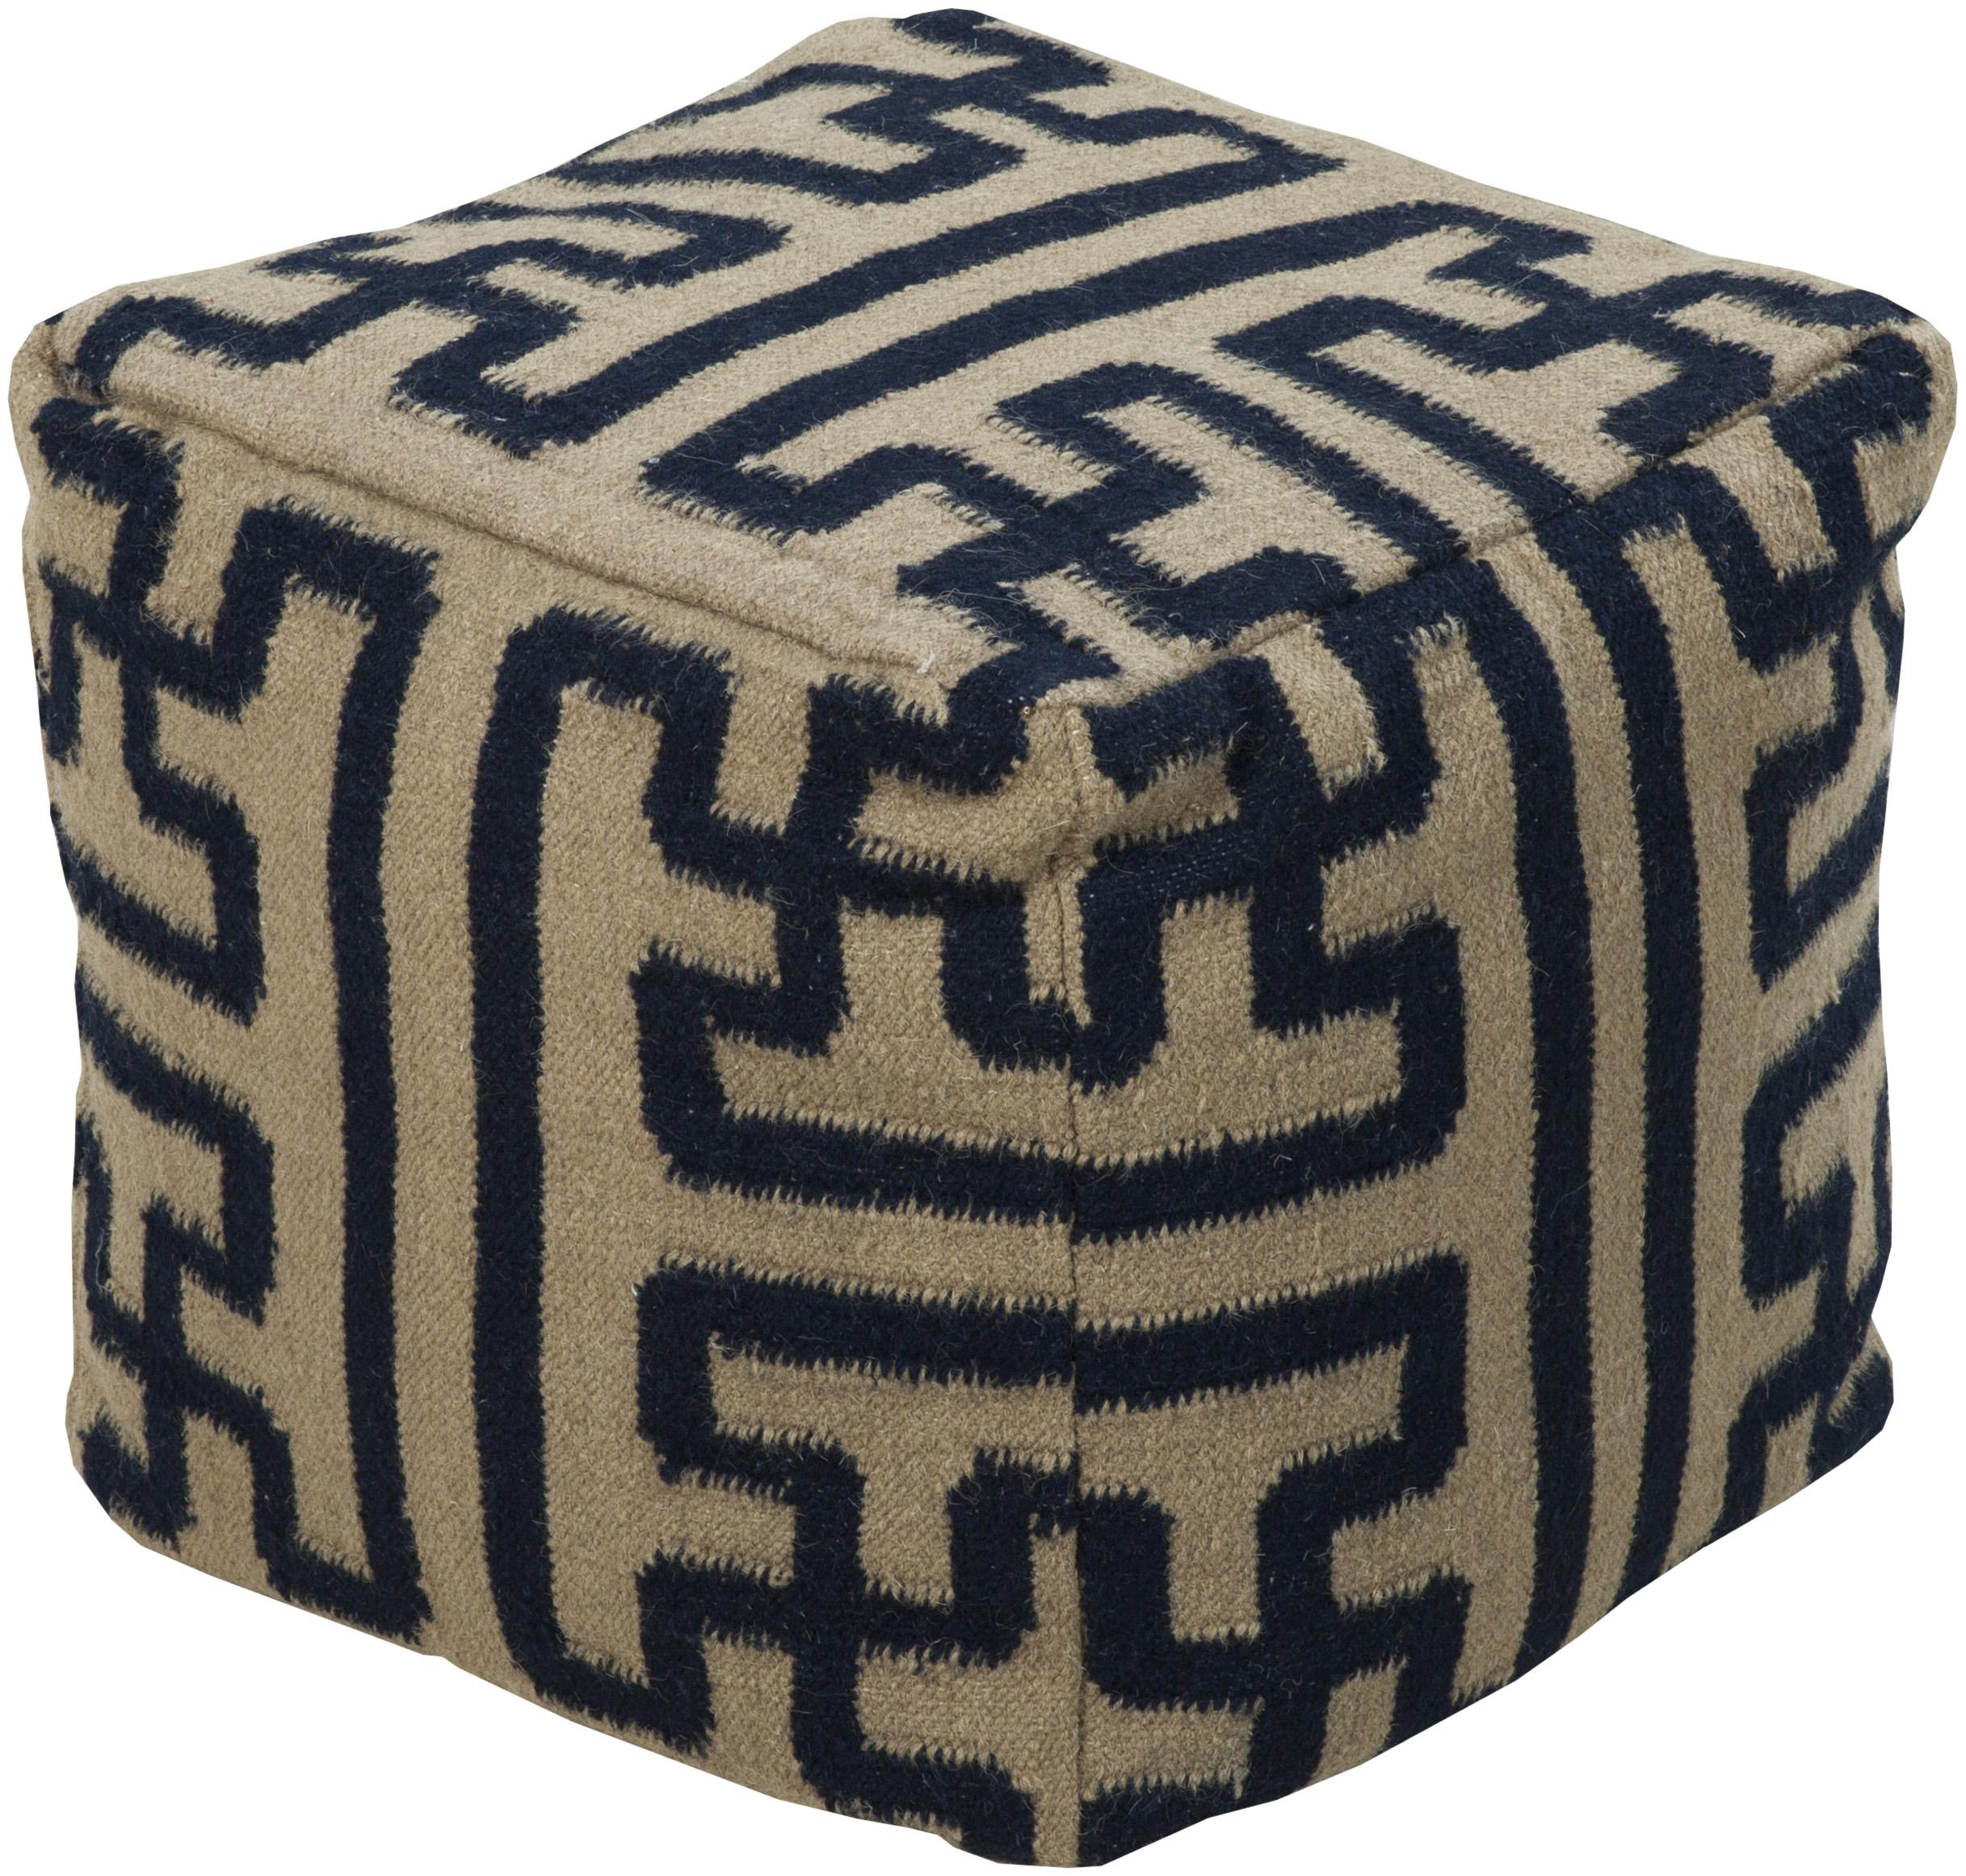 "Poufs 18""x18""x18"" Pouf by Surya at Suburban Furniture"